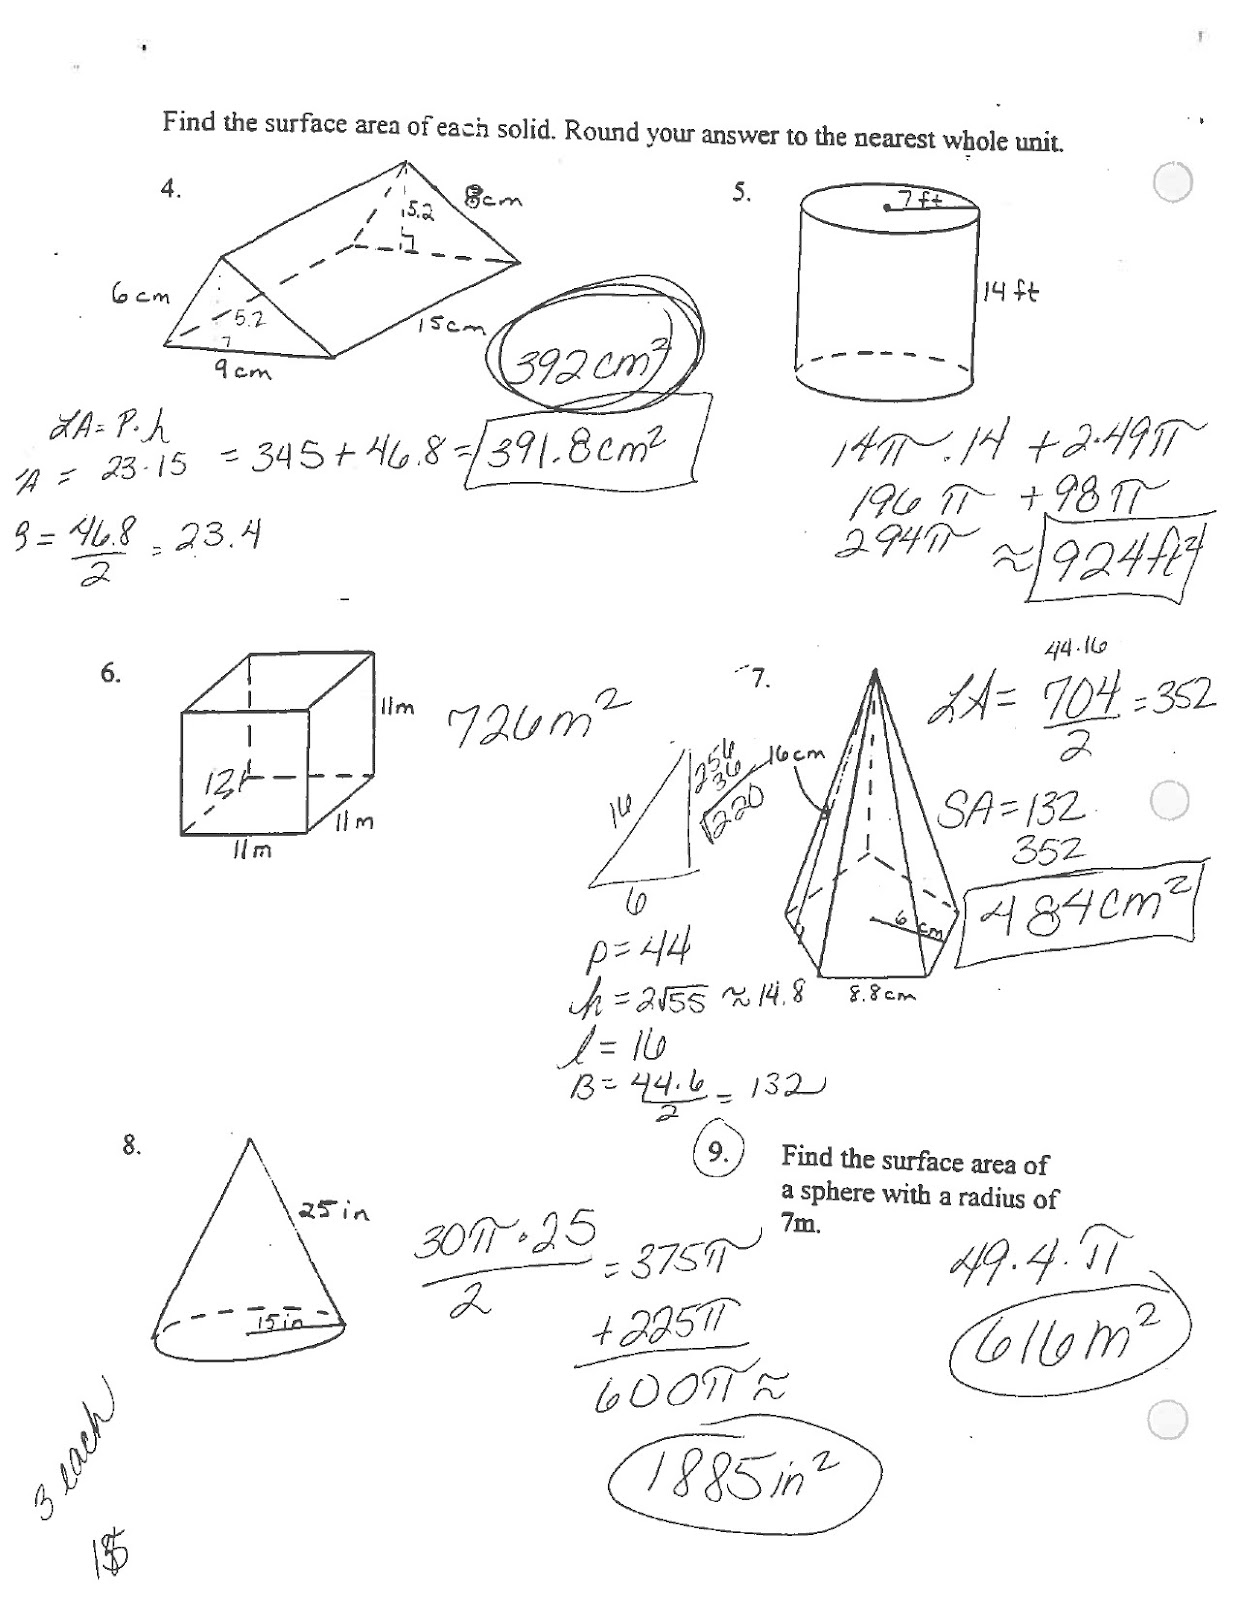 Math Classes Spring 2012: Geometry - Quiz on Surface Area